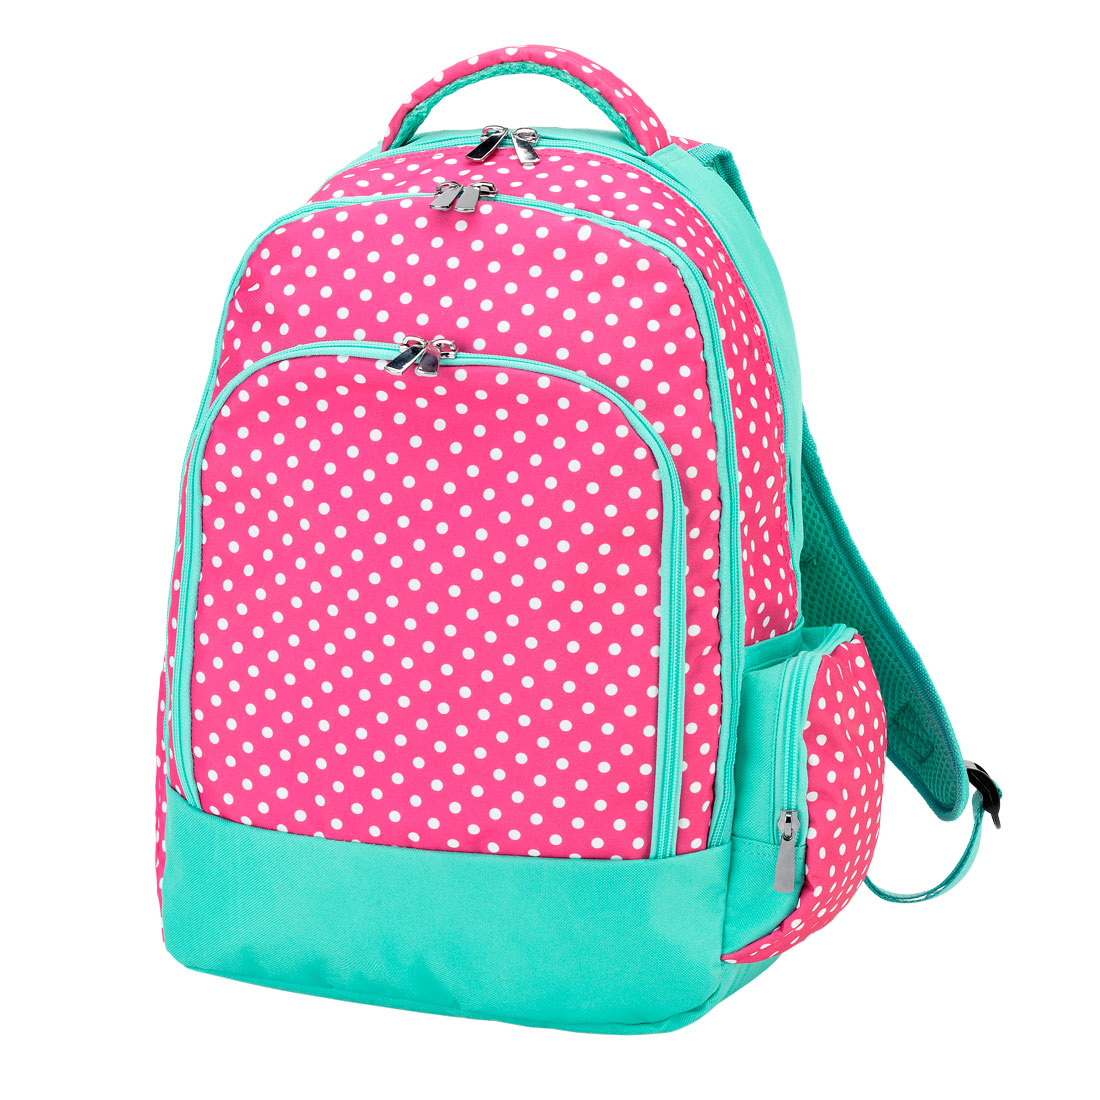 Dottie Backpack